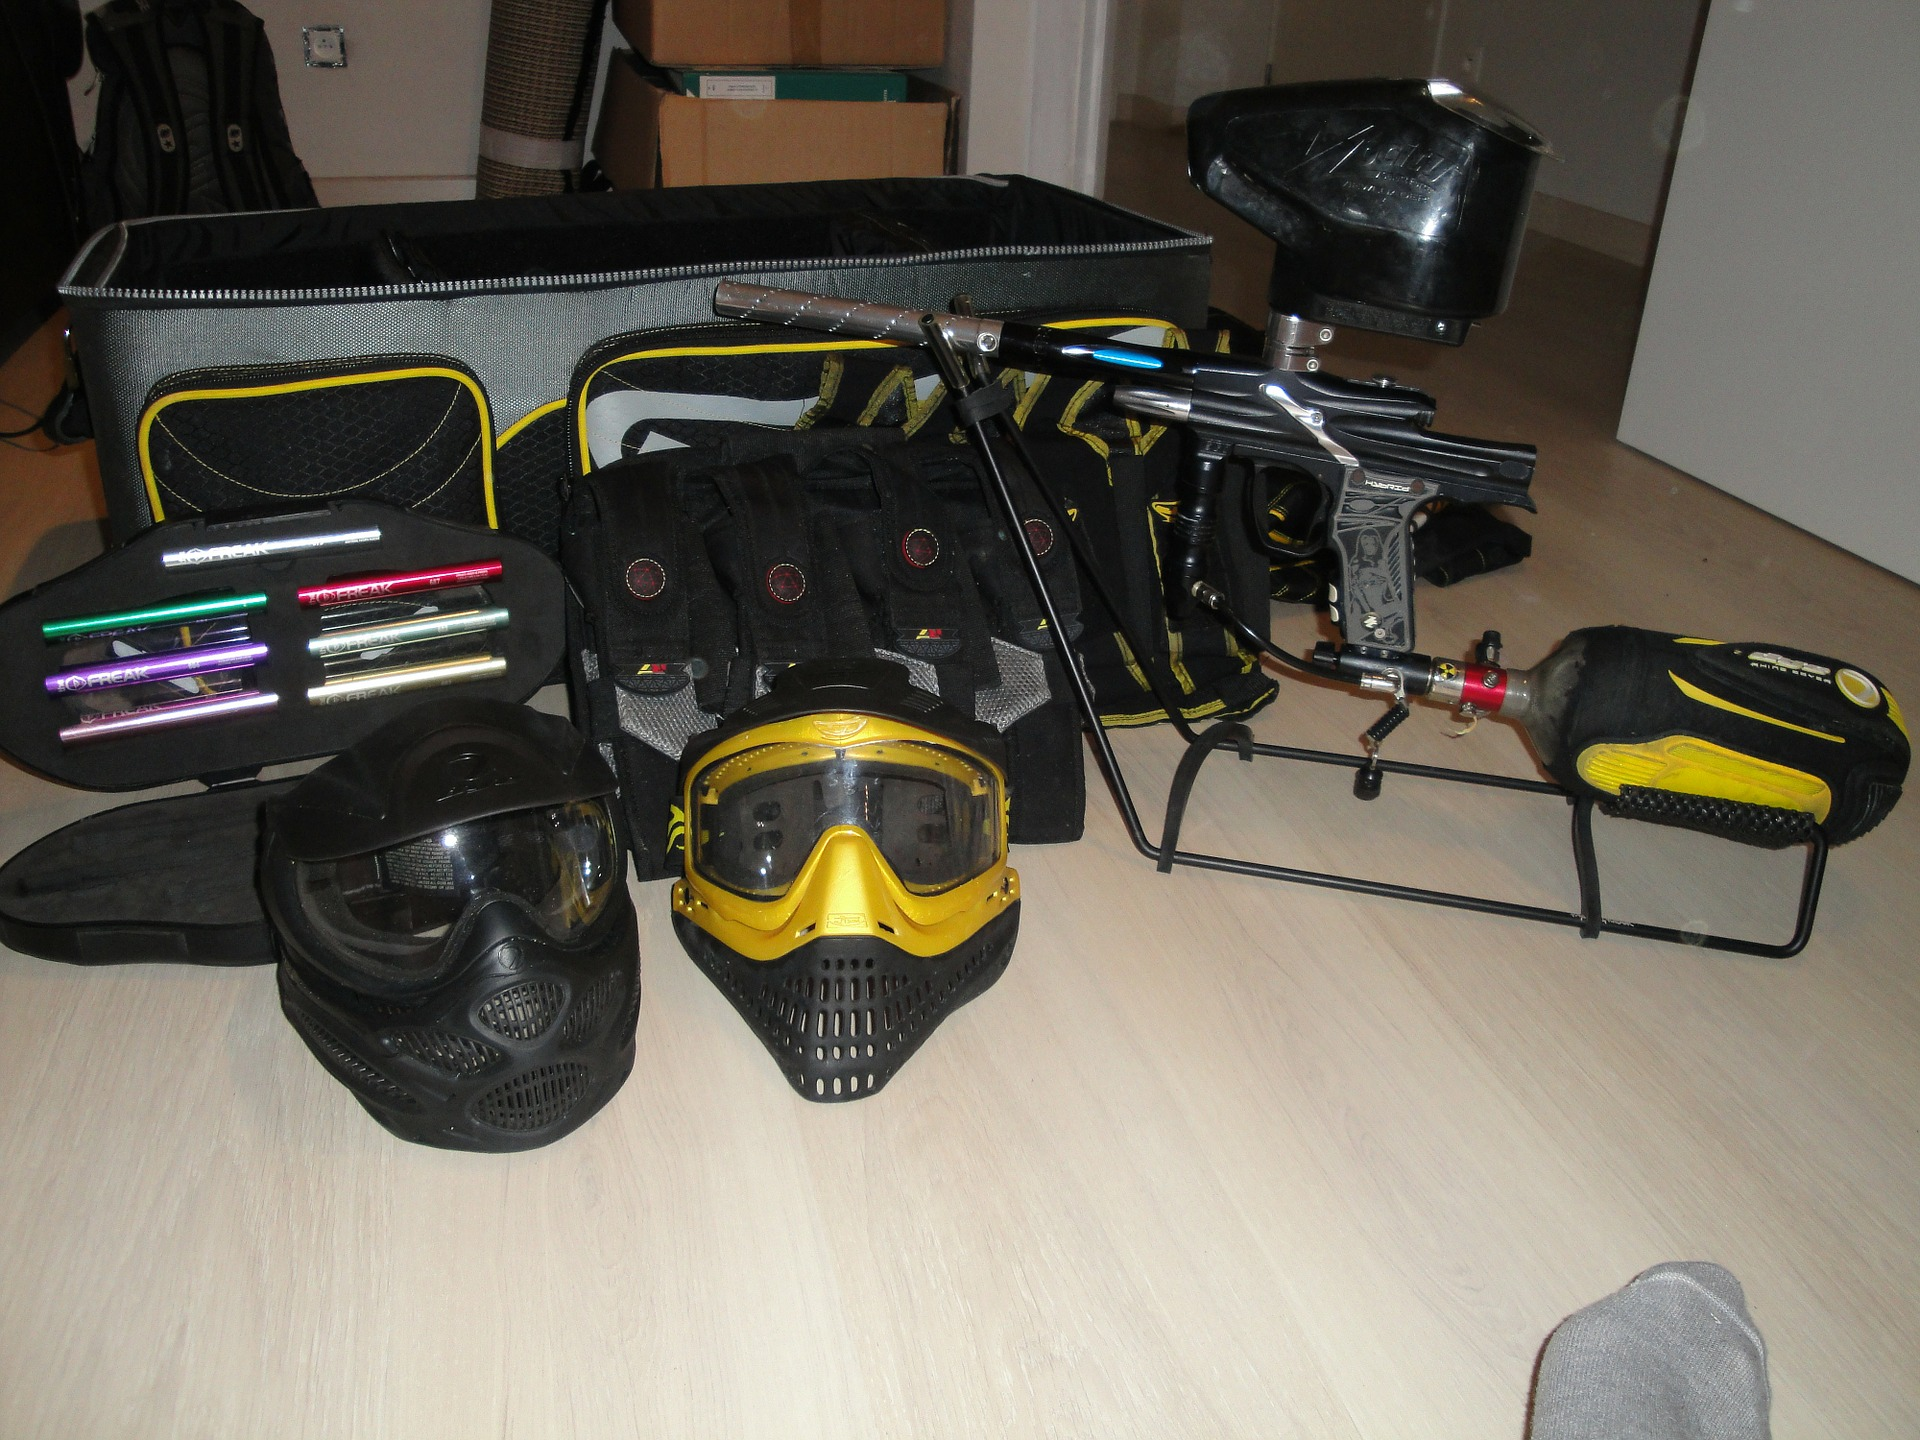 Paintball gear including mask,vest,gun,and helmet